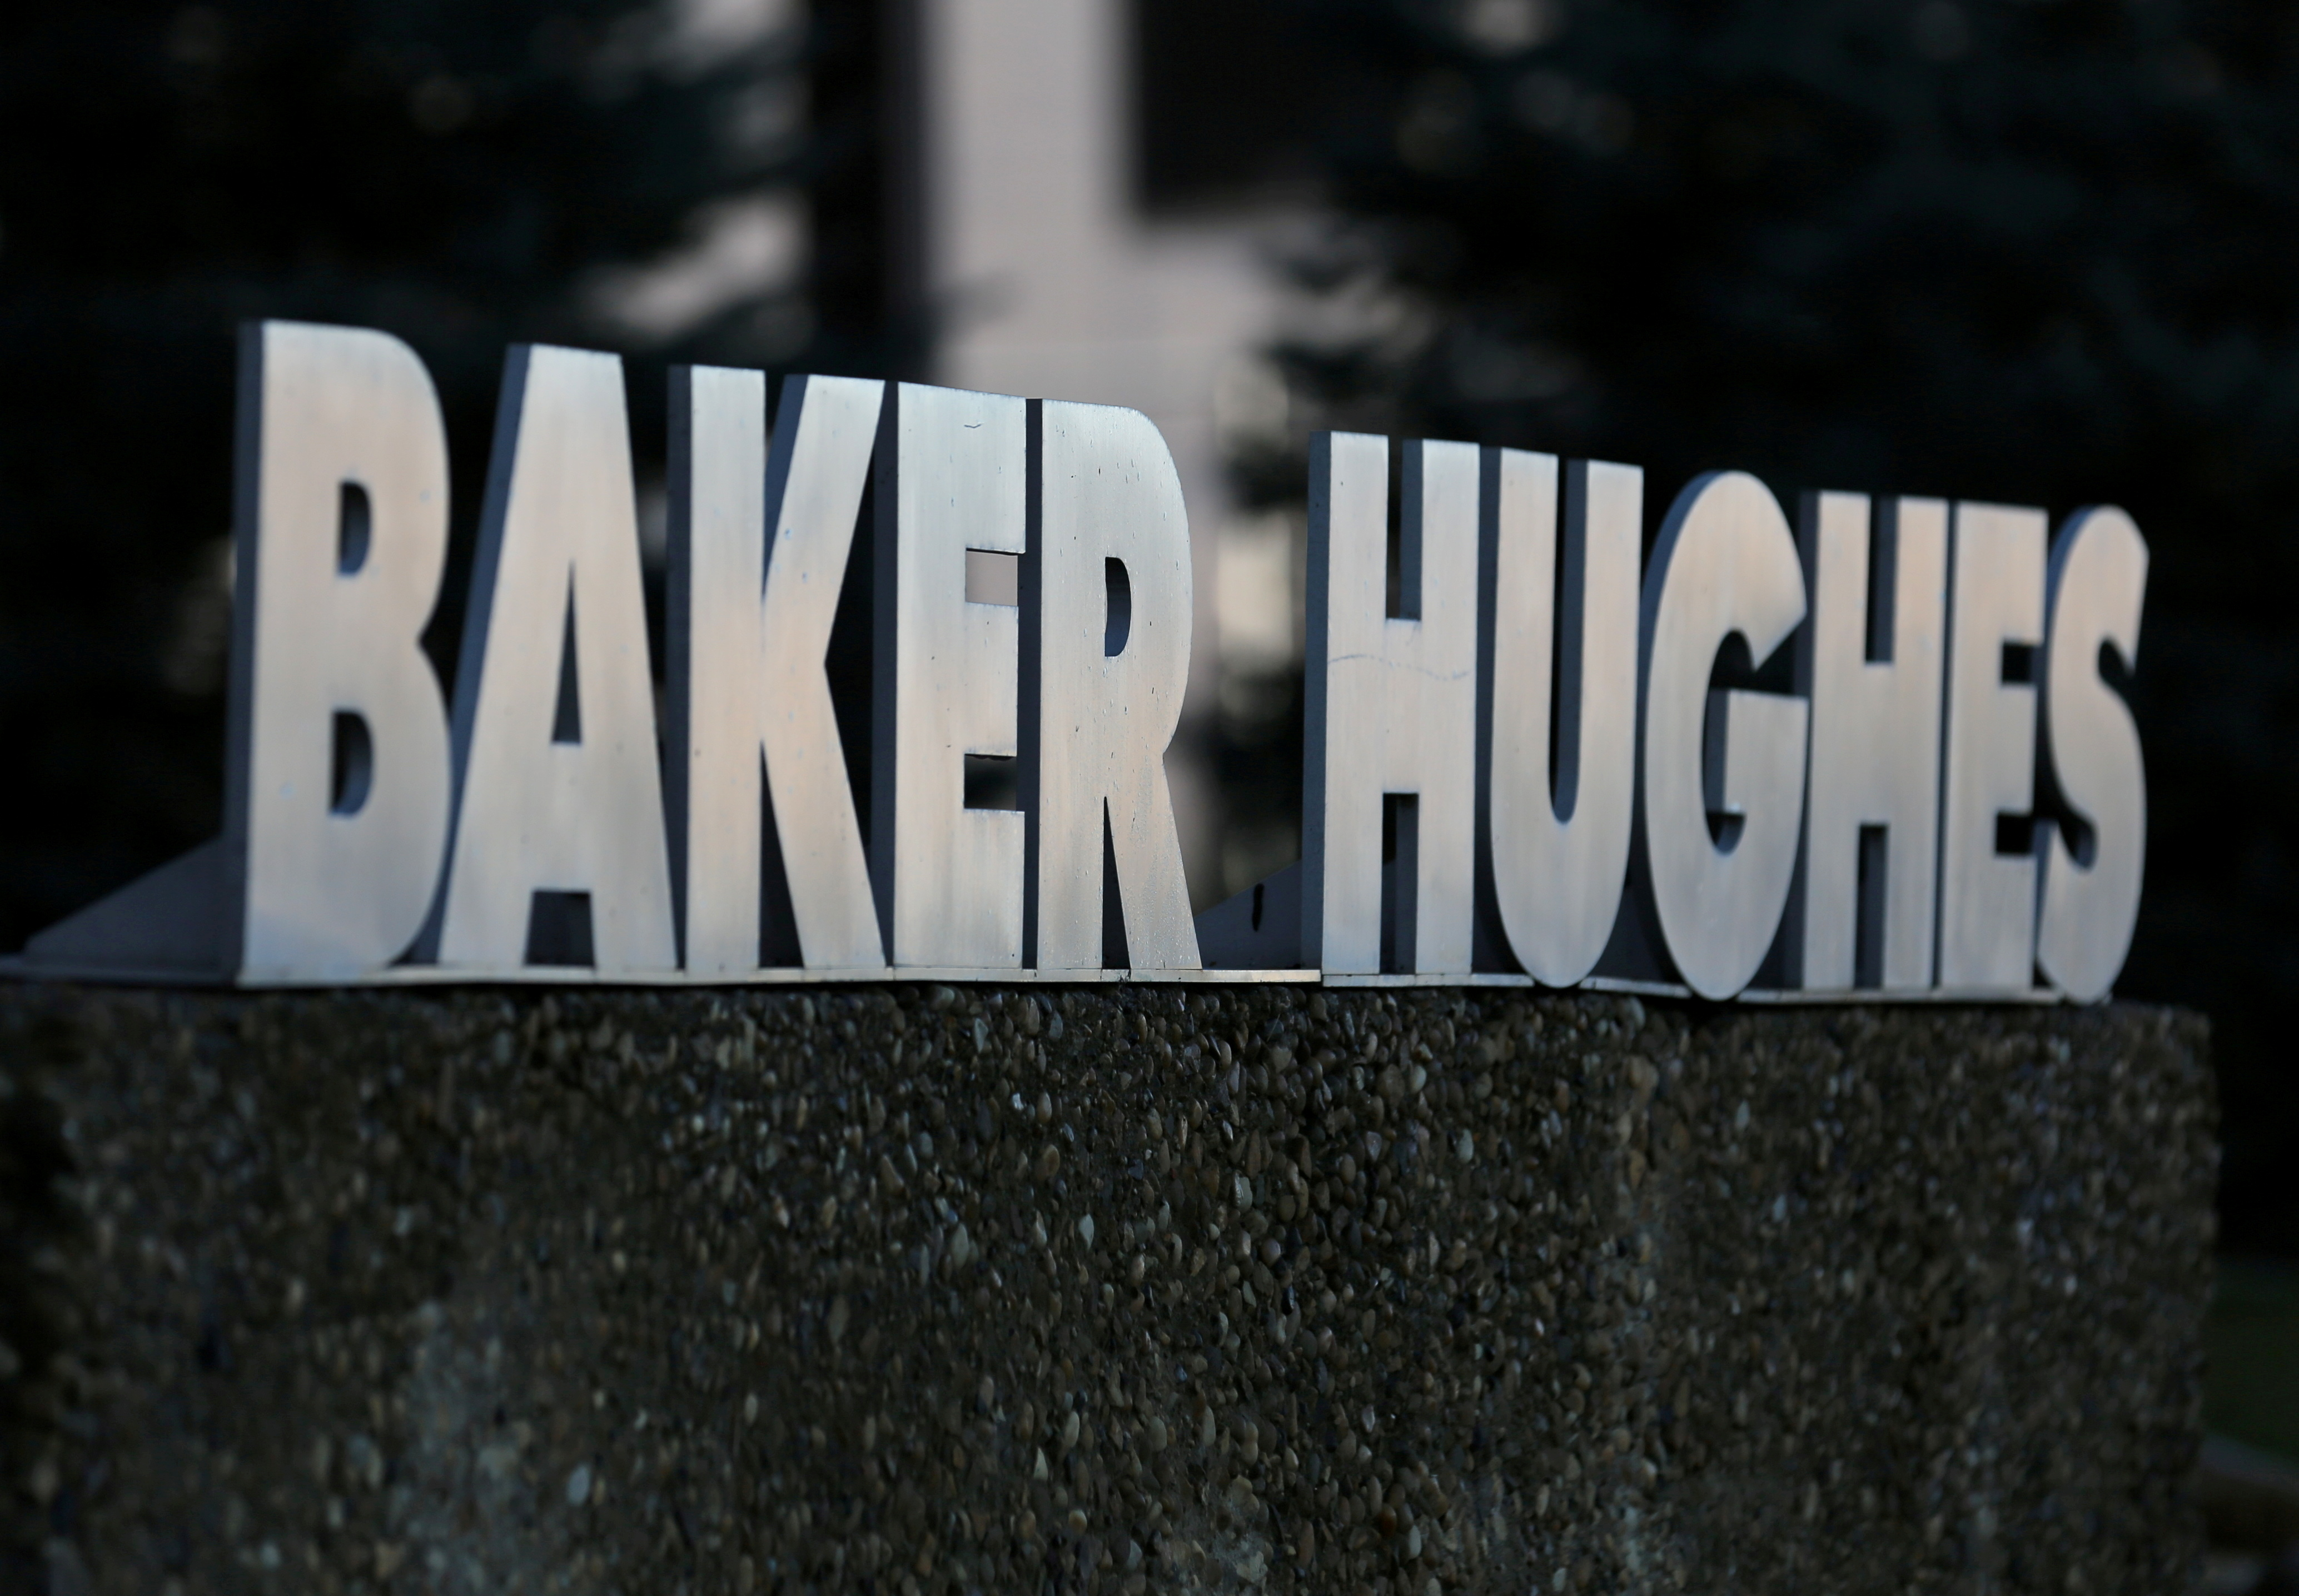 A Baker Hughes sign is displayed outside the oil logistics company's local office in Sherwood Park, near Edmonton, Alberta, Canada November 13, 2016. REUTERS/Chris Helgren/File Photo